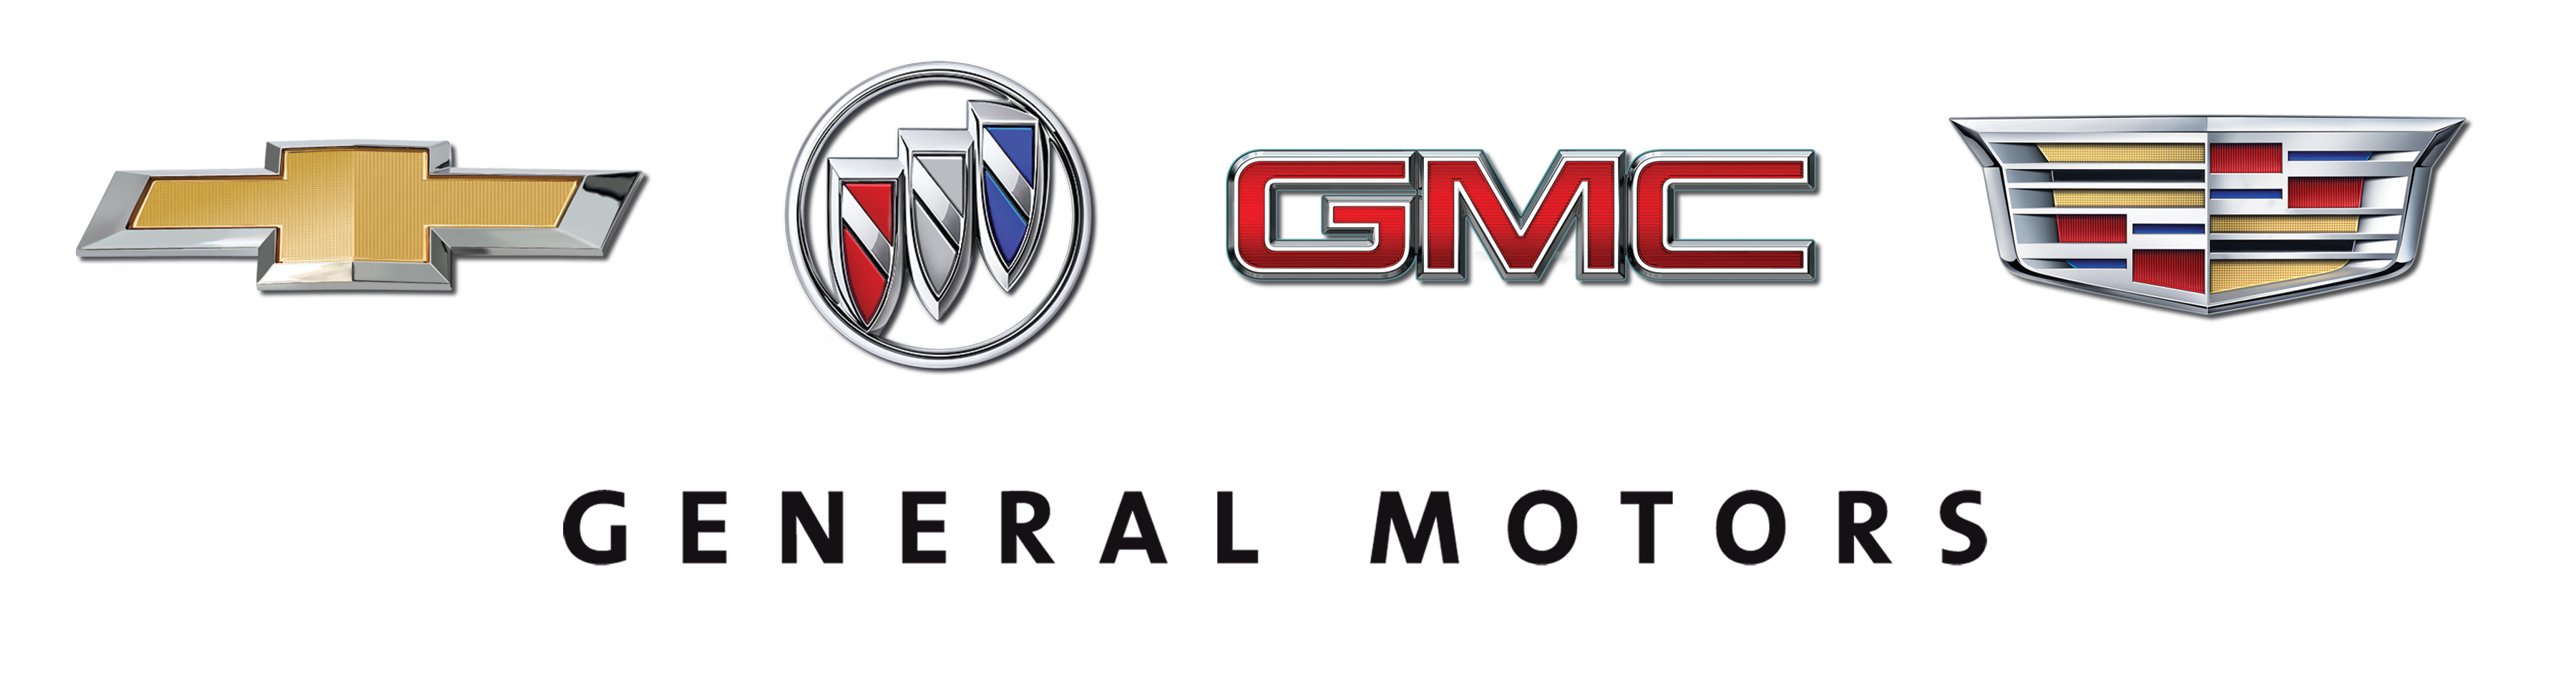 Gm Corporate Newsroom United States Images